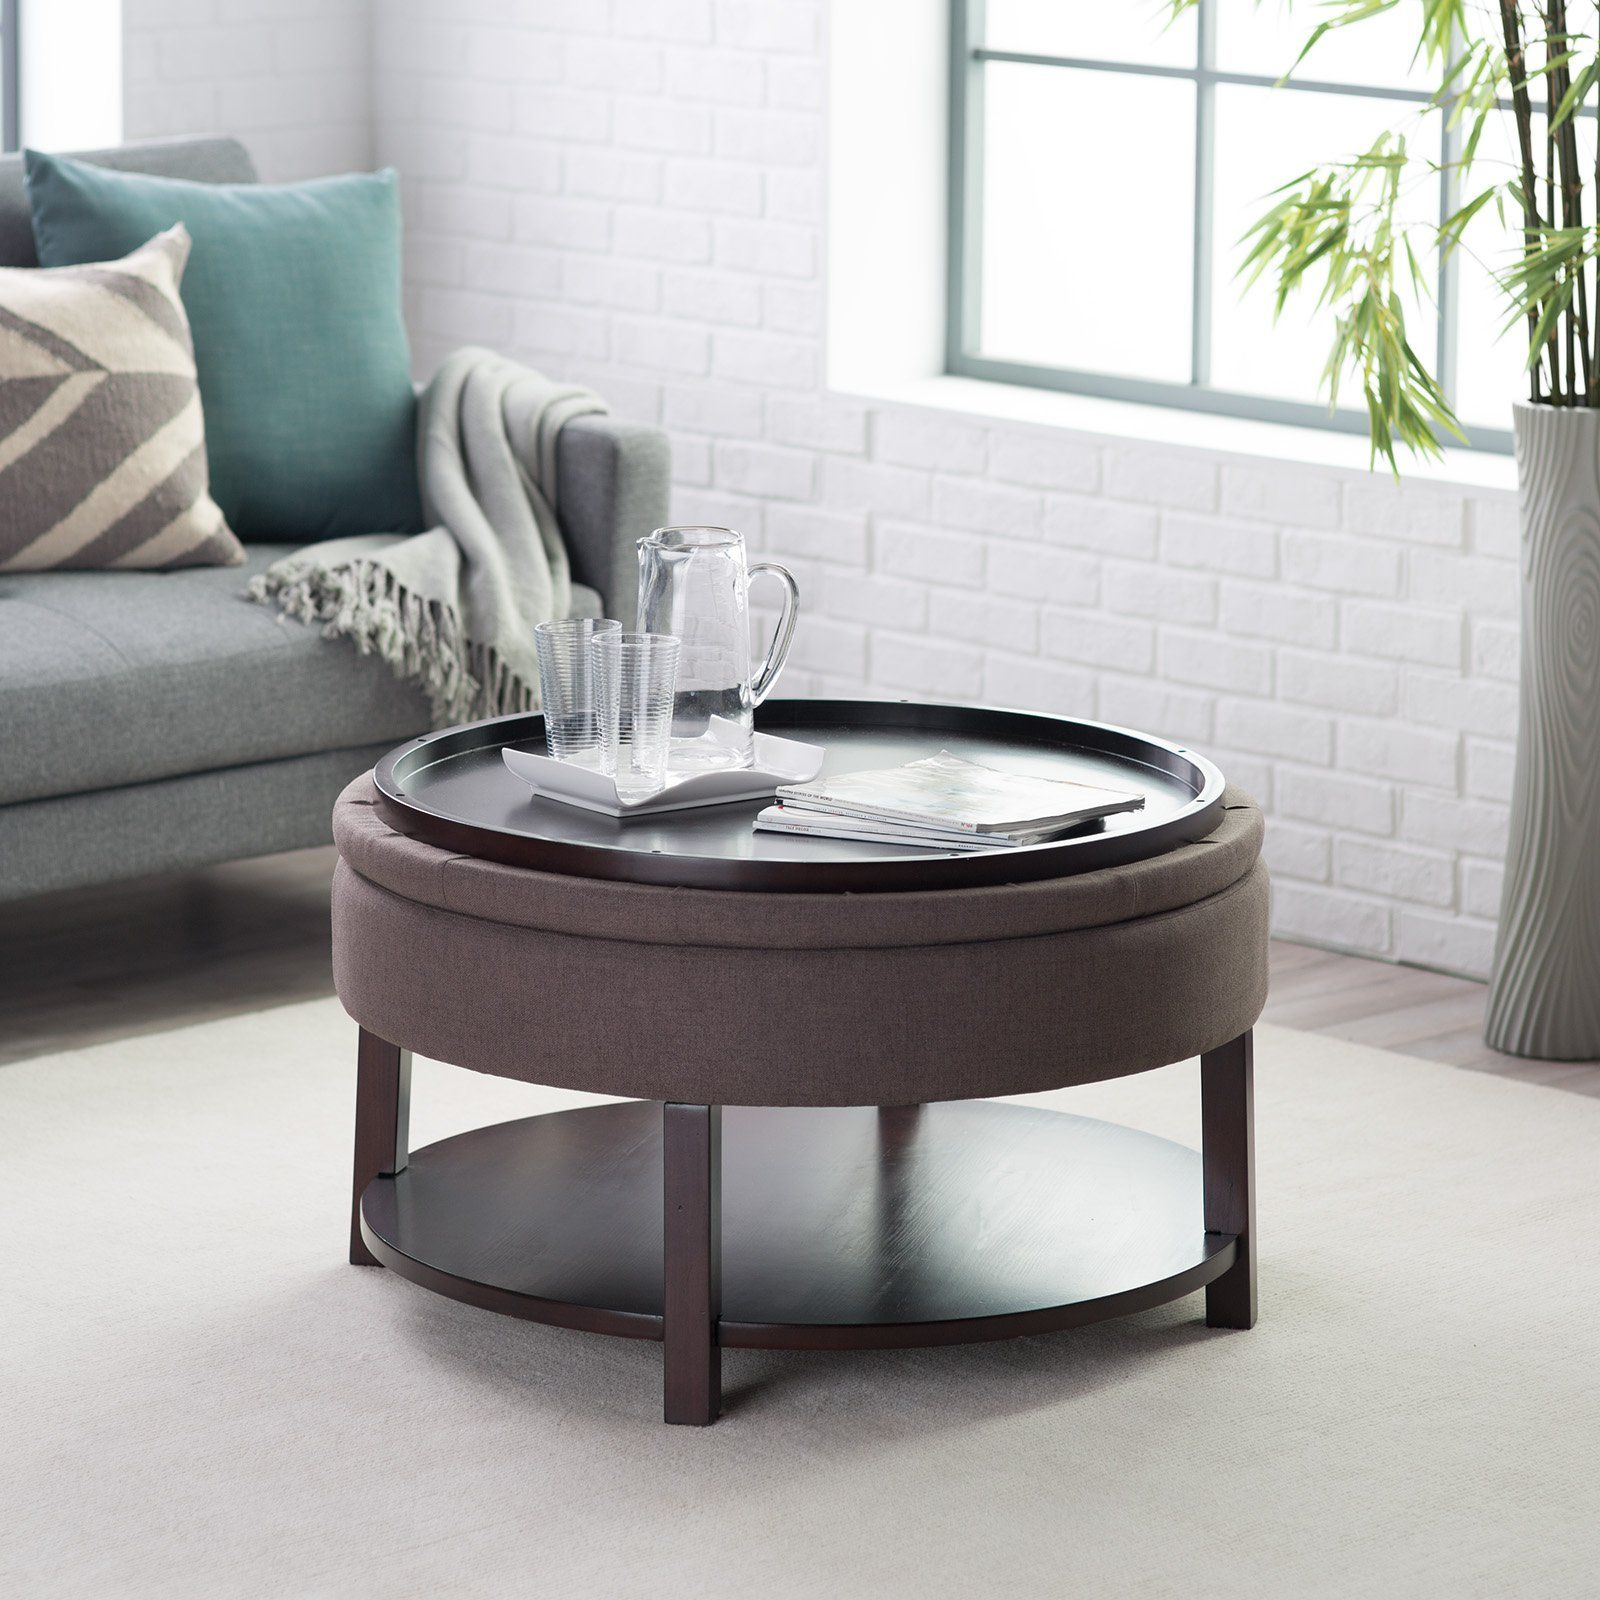 Merveilleux Ottoman Belham Living Dalton Coffee Table Round Tufted Storage Ottoman With  Tray U0026 Shelf   Ottomans At Hayneedle